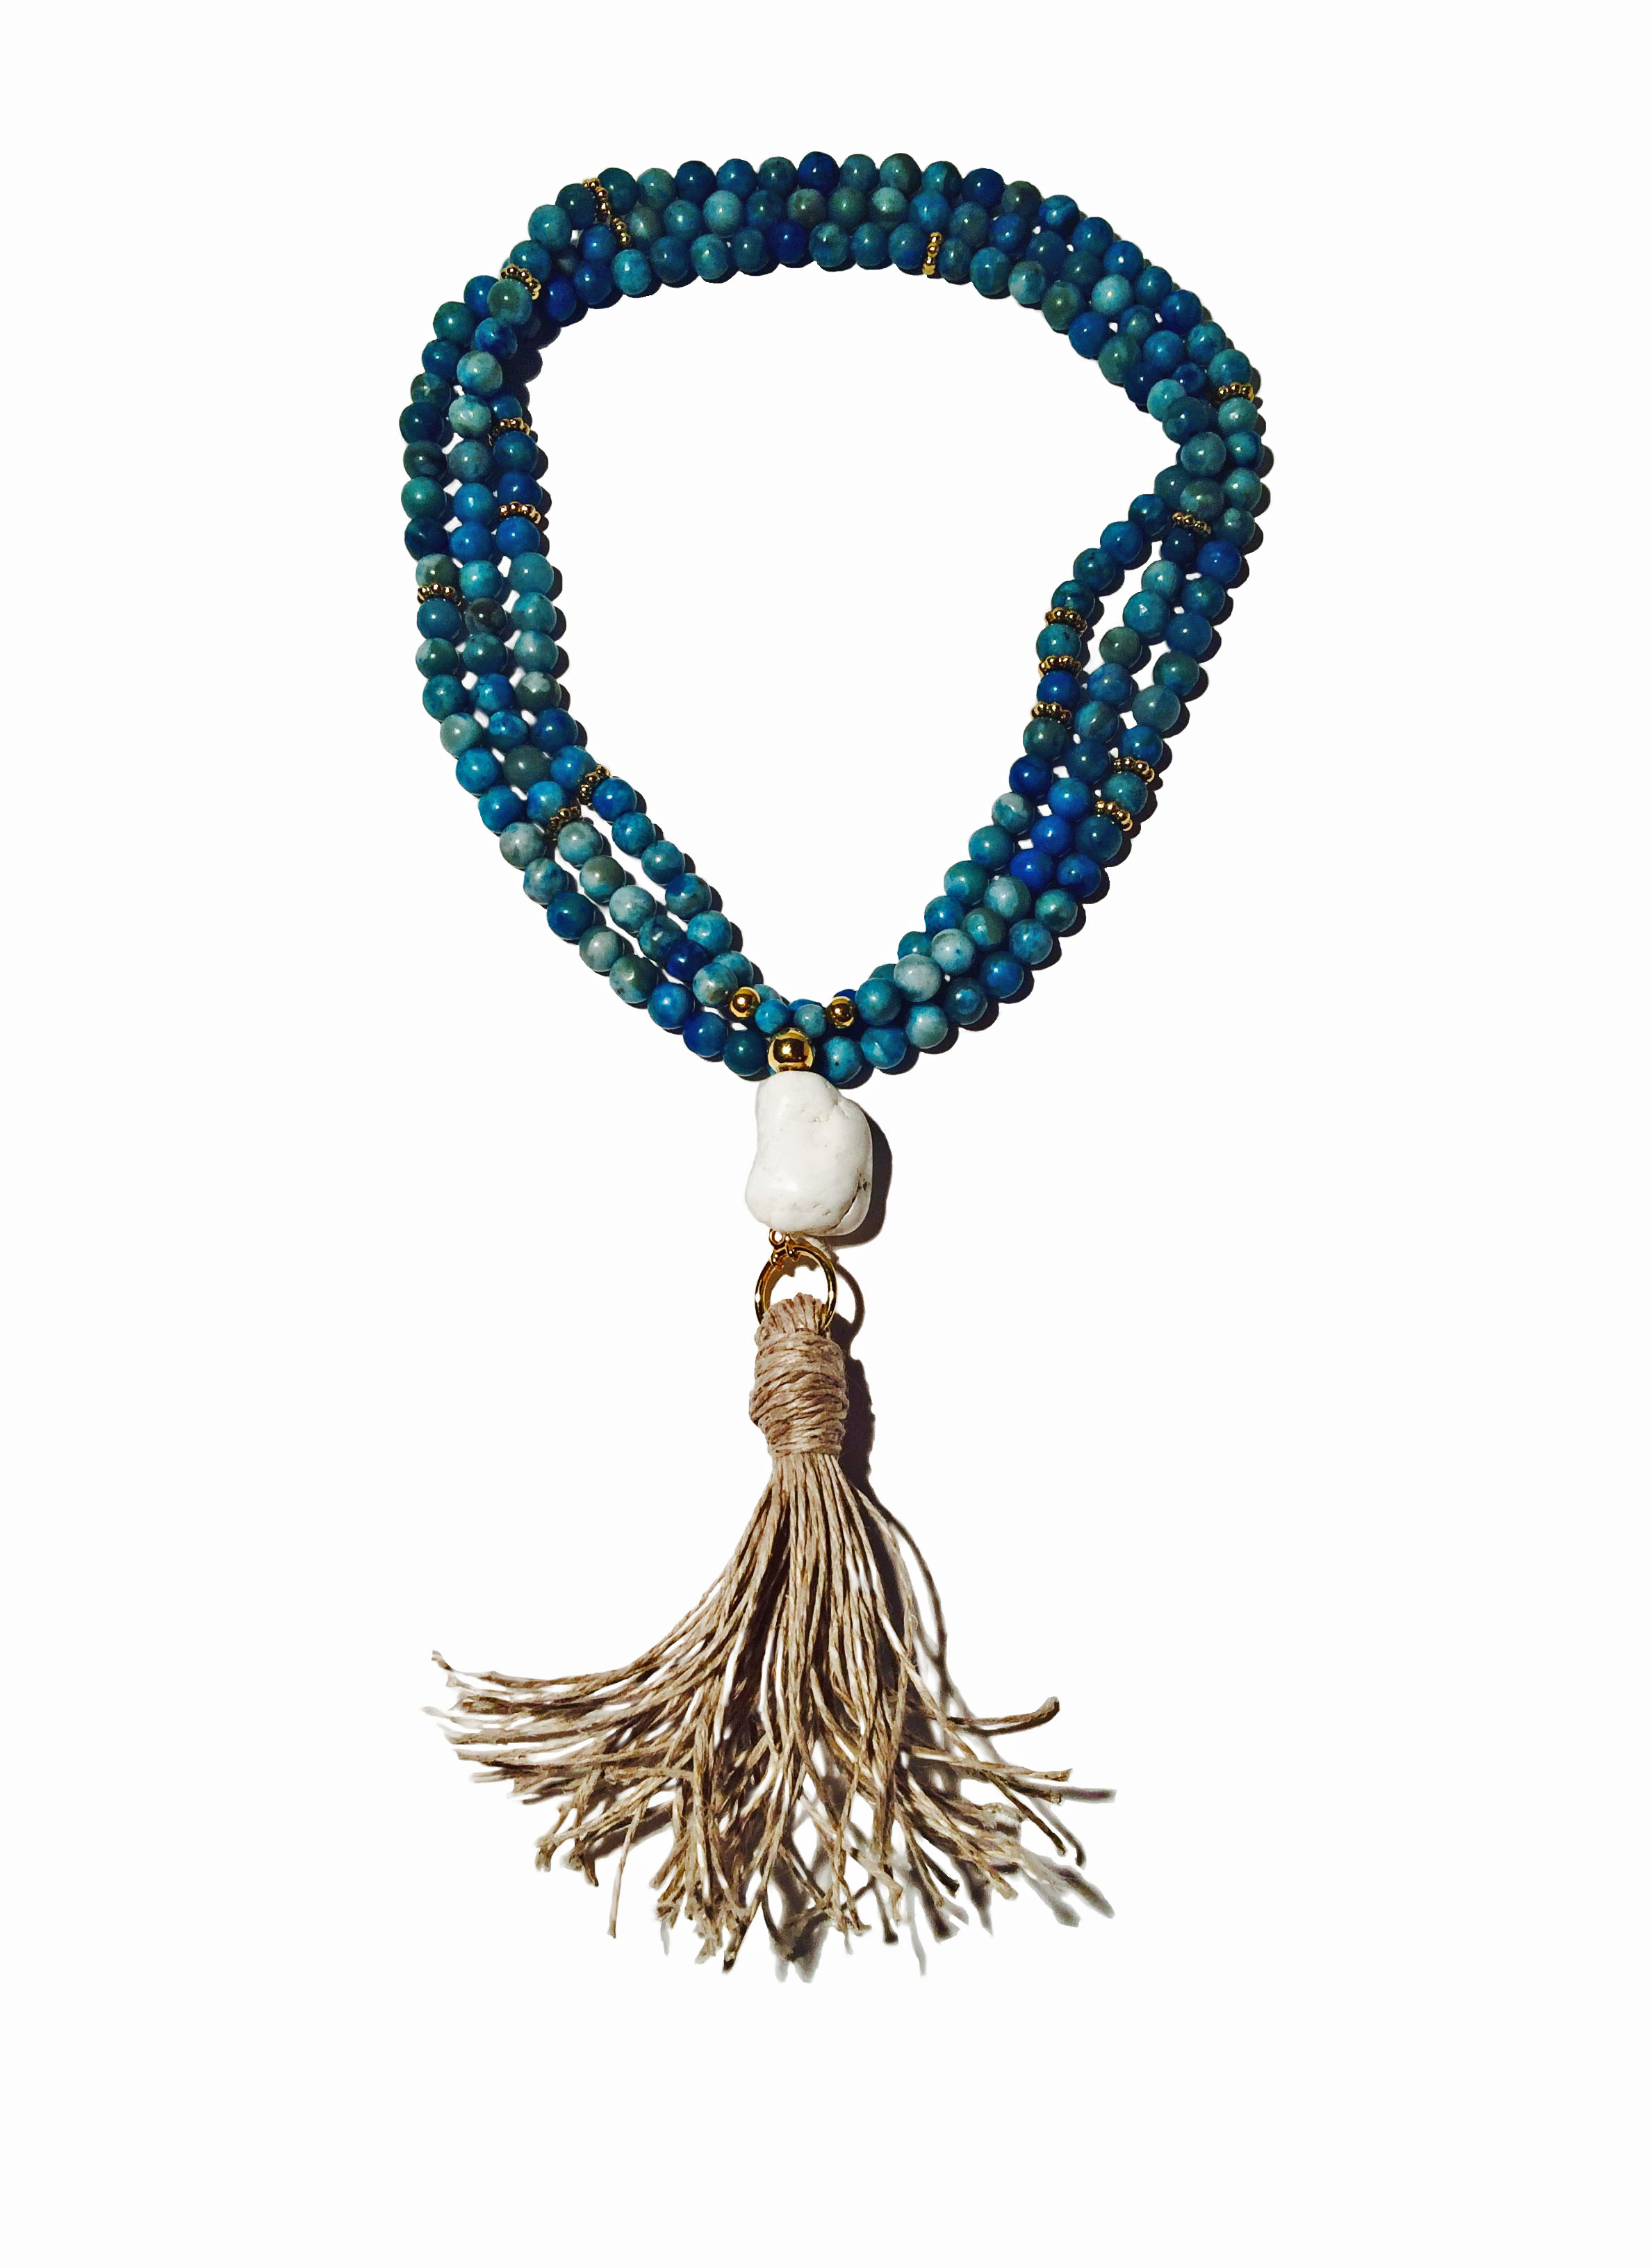 fringe pendant new twisted tassel vintage jewellery silver products ethnic timber beads shop multilayer boho necklace chain turquoise rivet fashion